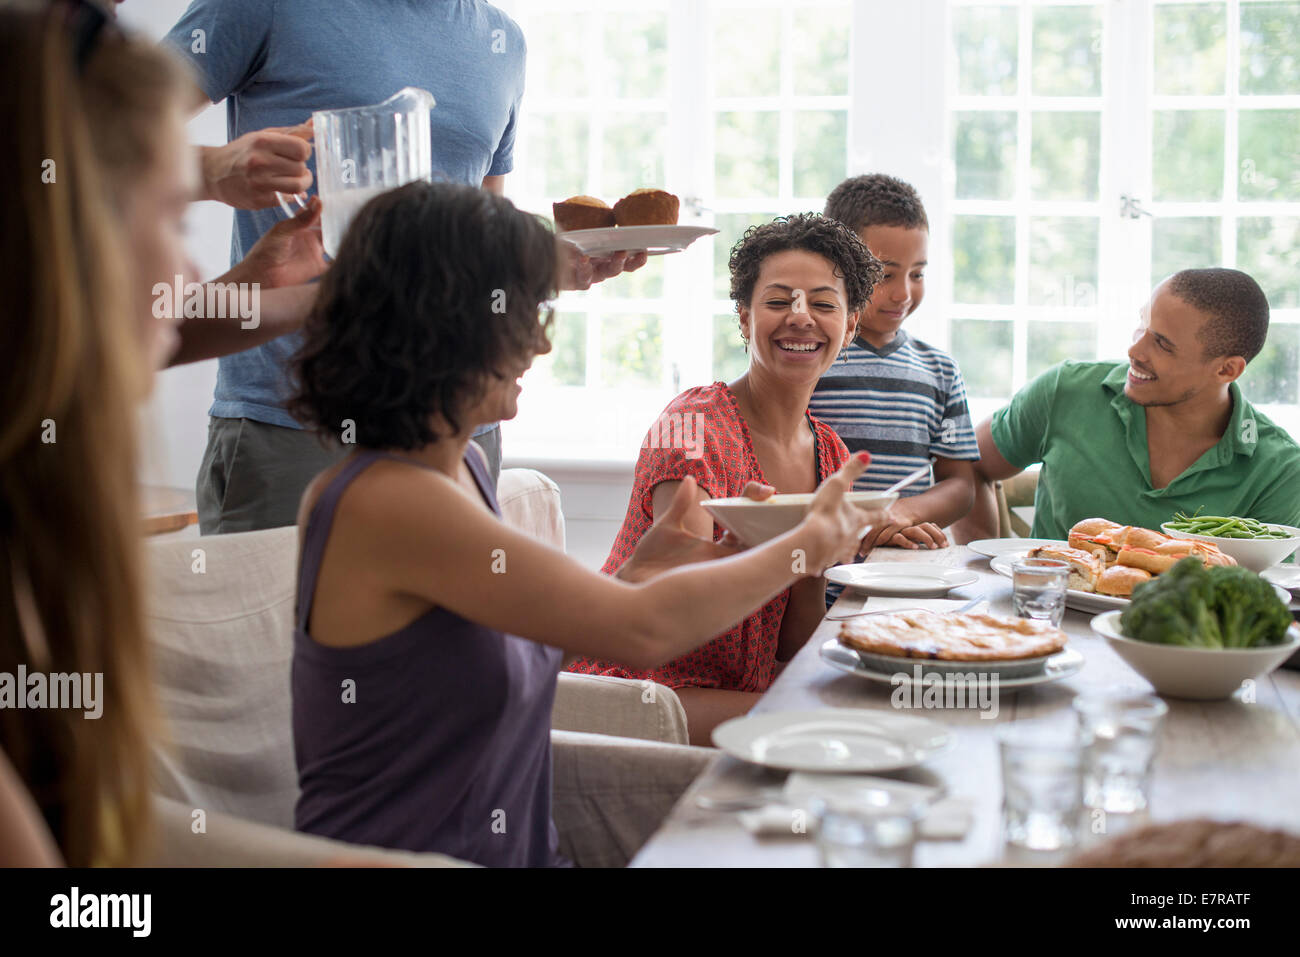 A family gathering, men, women and children around a dining table sharing a meal. - Stock Image